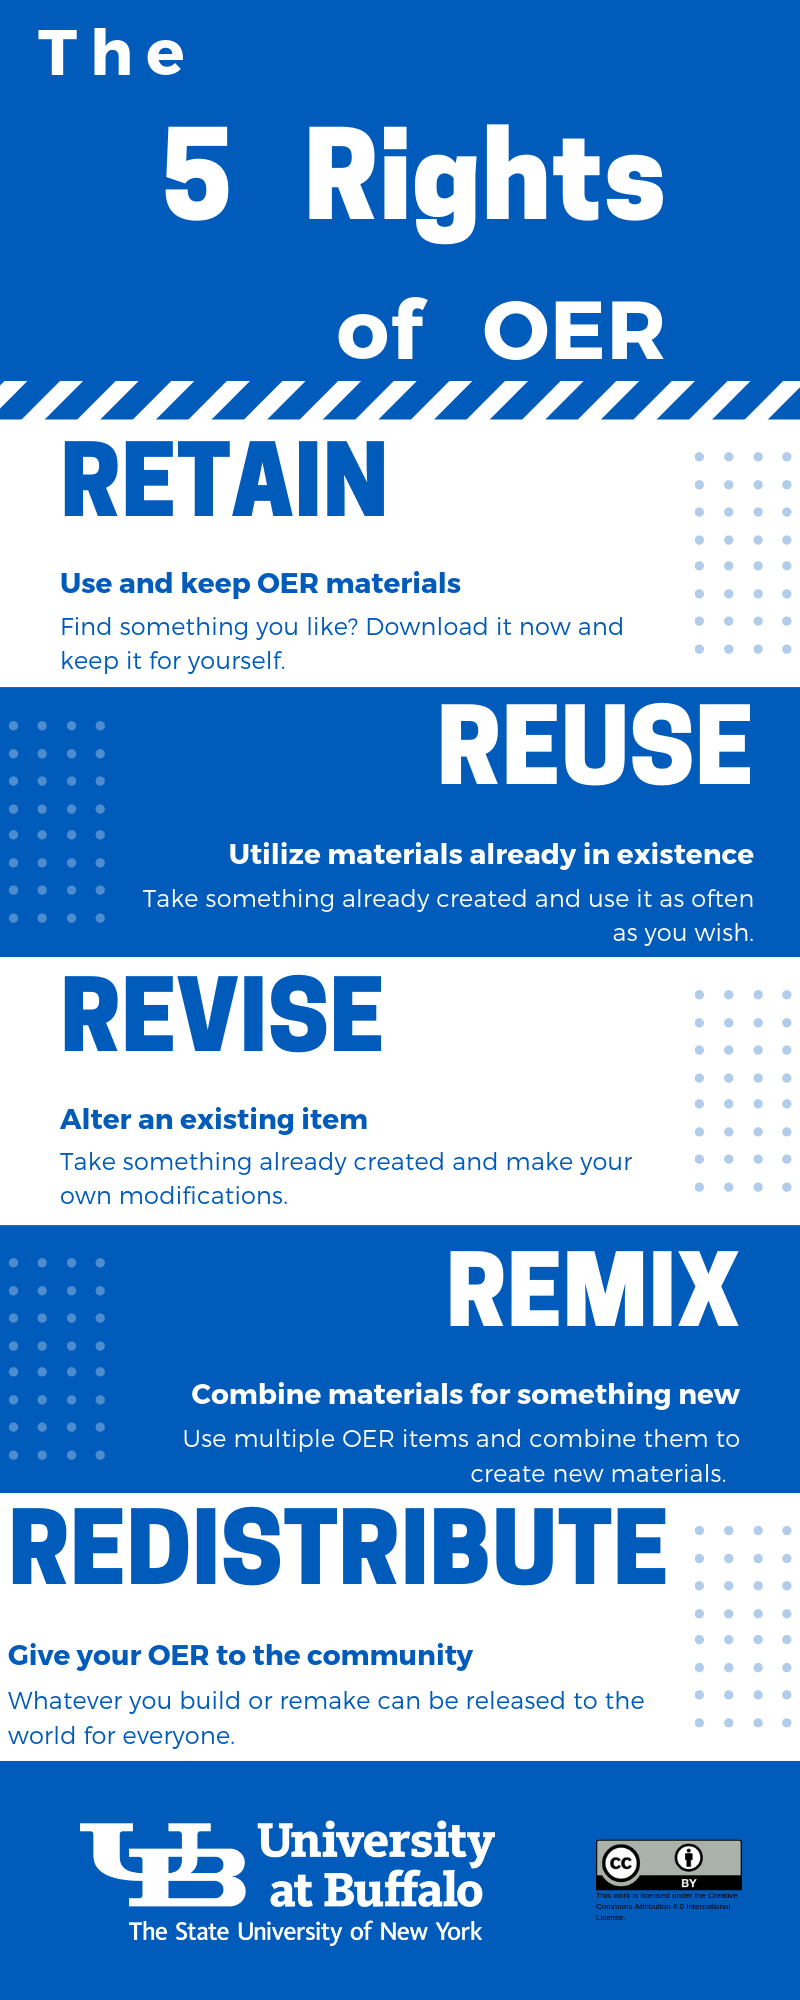 Infographic demonstrating the five rights of O E R: retain, reuse, revise, remix, and redistribute.